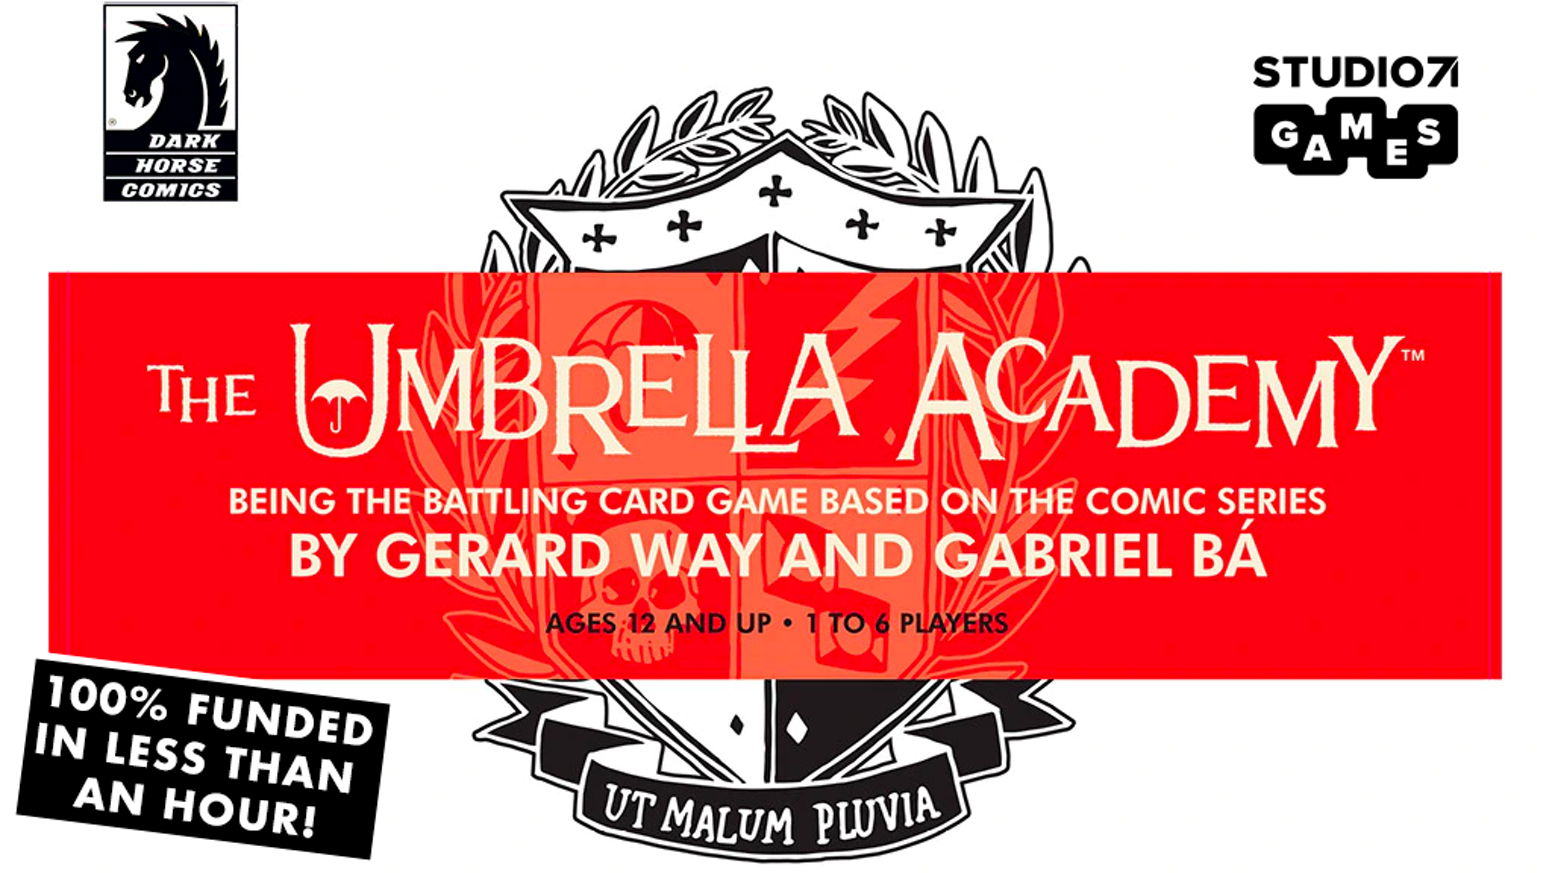 Umbrella Academy Card Game Based on the Acclaimed Comic Book Series by Gerard Way and Gabriel Bá